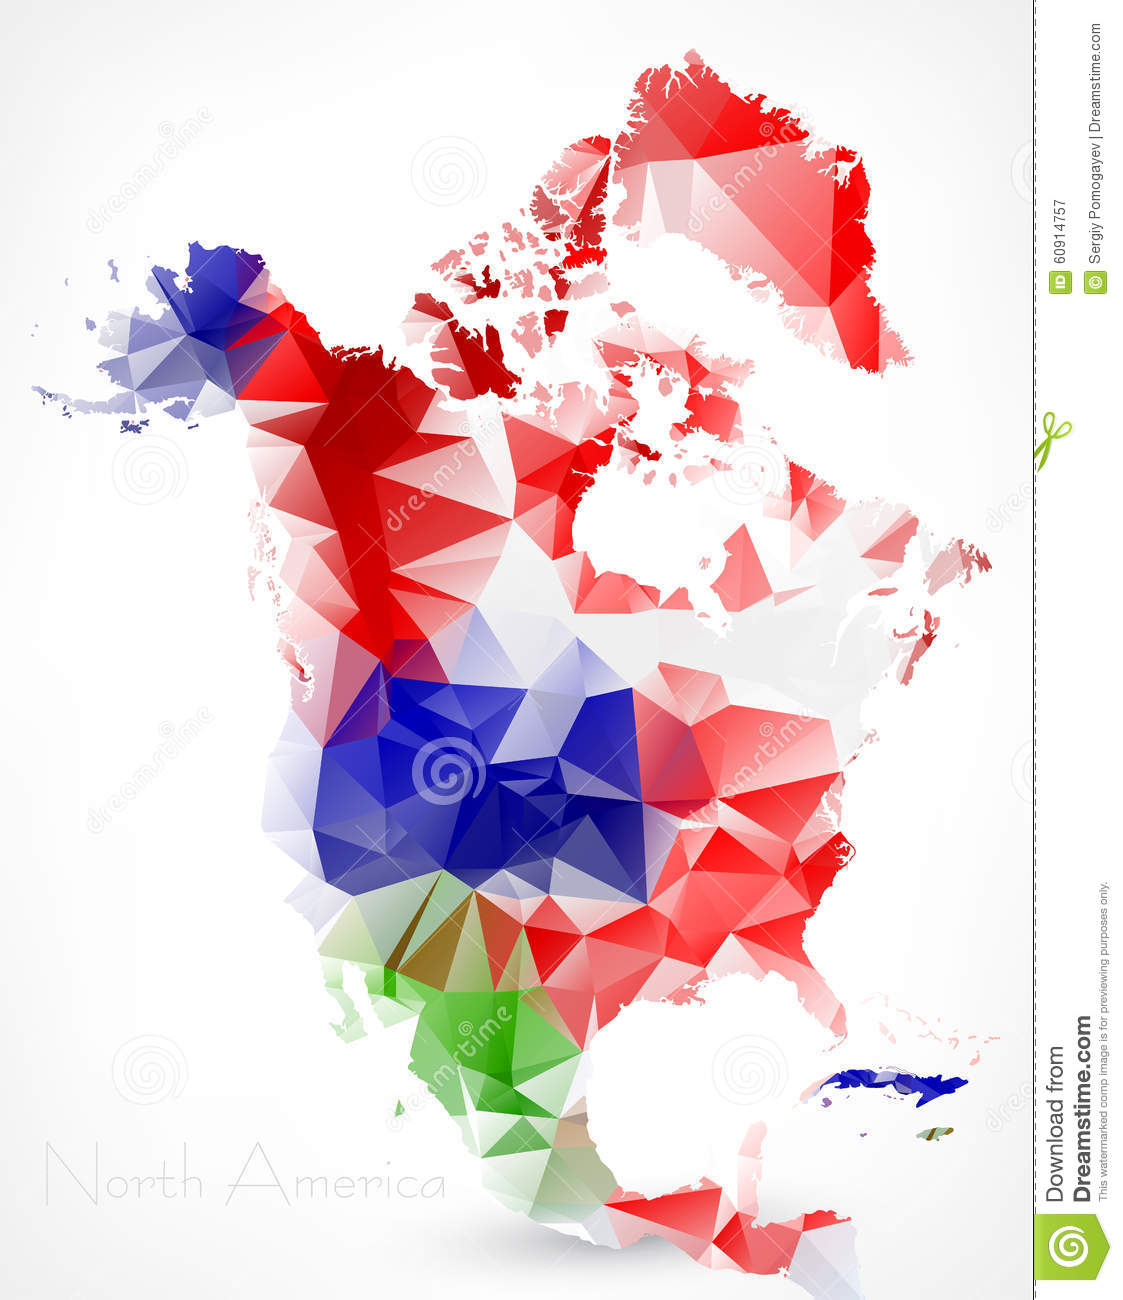 Abstract Polygonal Geometric Map Of North America Stock Vector - Download map of north america